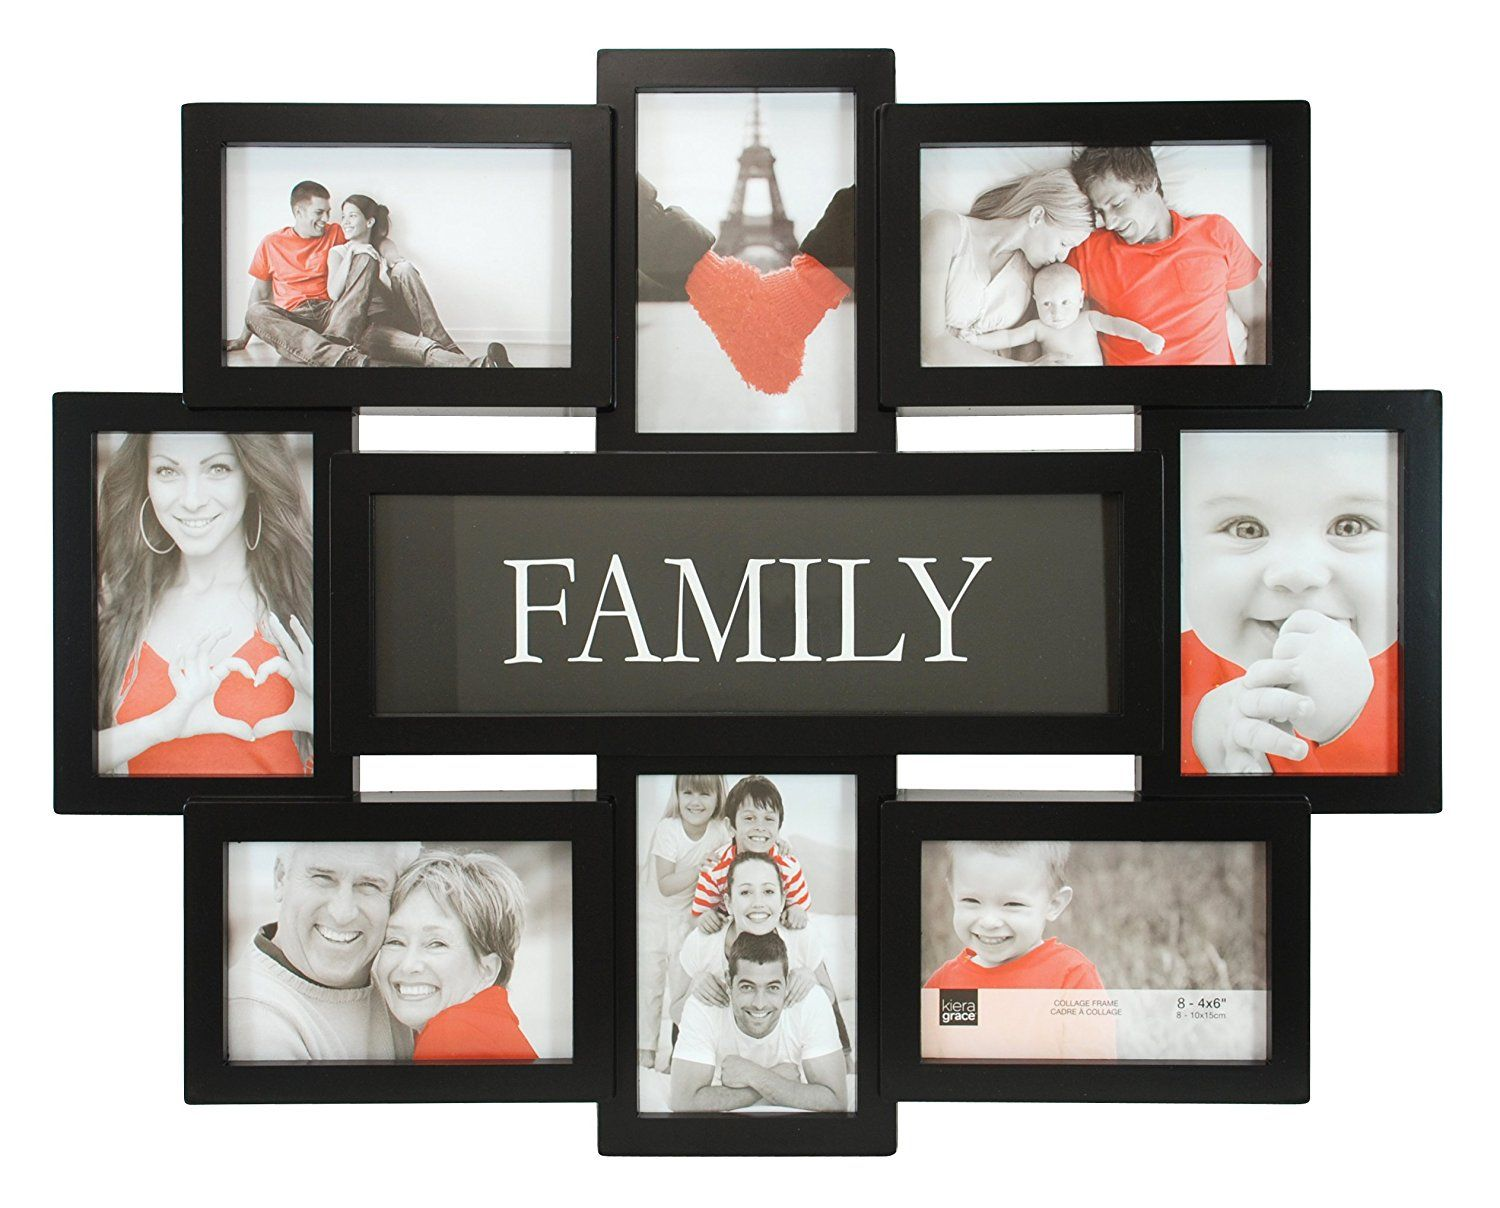 Kiera Grace Family Collage Frame 17 5 By 22 Inch Holds 8 4 By 6 Inch Photos Black You Can Fin Family Collage Frame Family Collage Collage Picture Frames